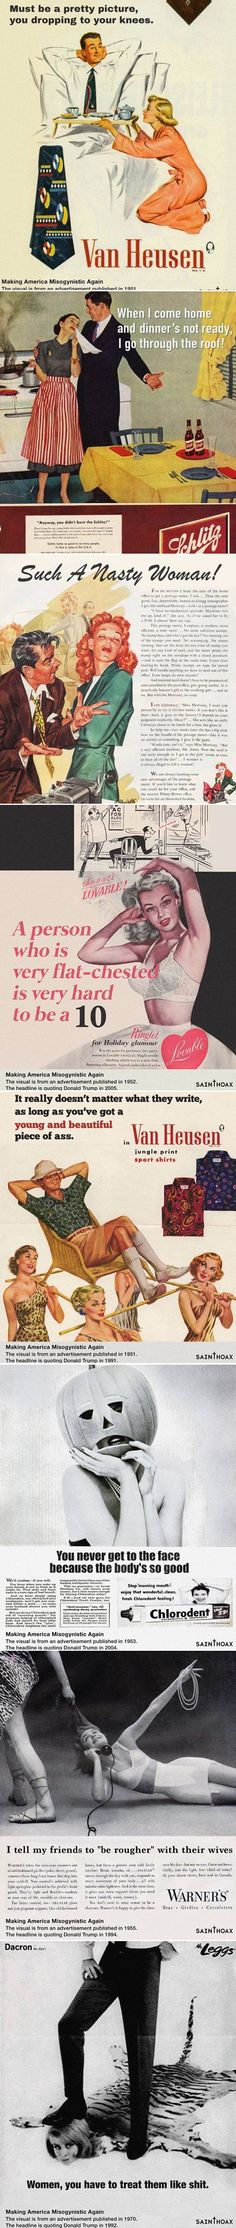 'Saint Hoax' took misogynistic ads from the 1950s and added Donald Trump's sexist quotes.